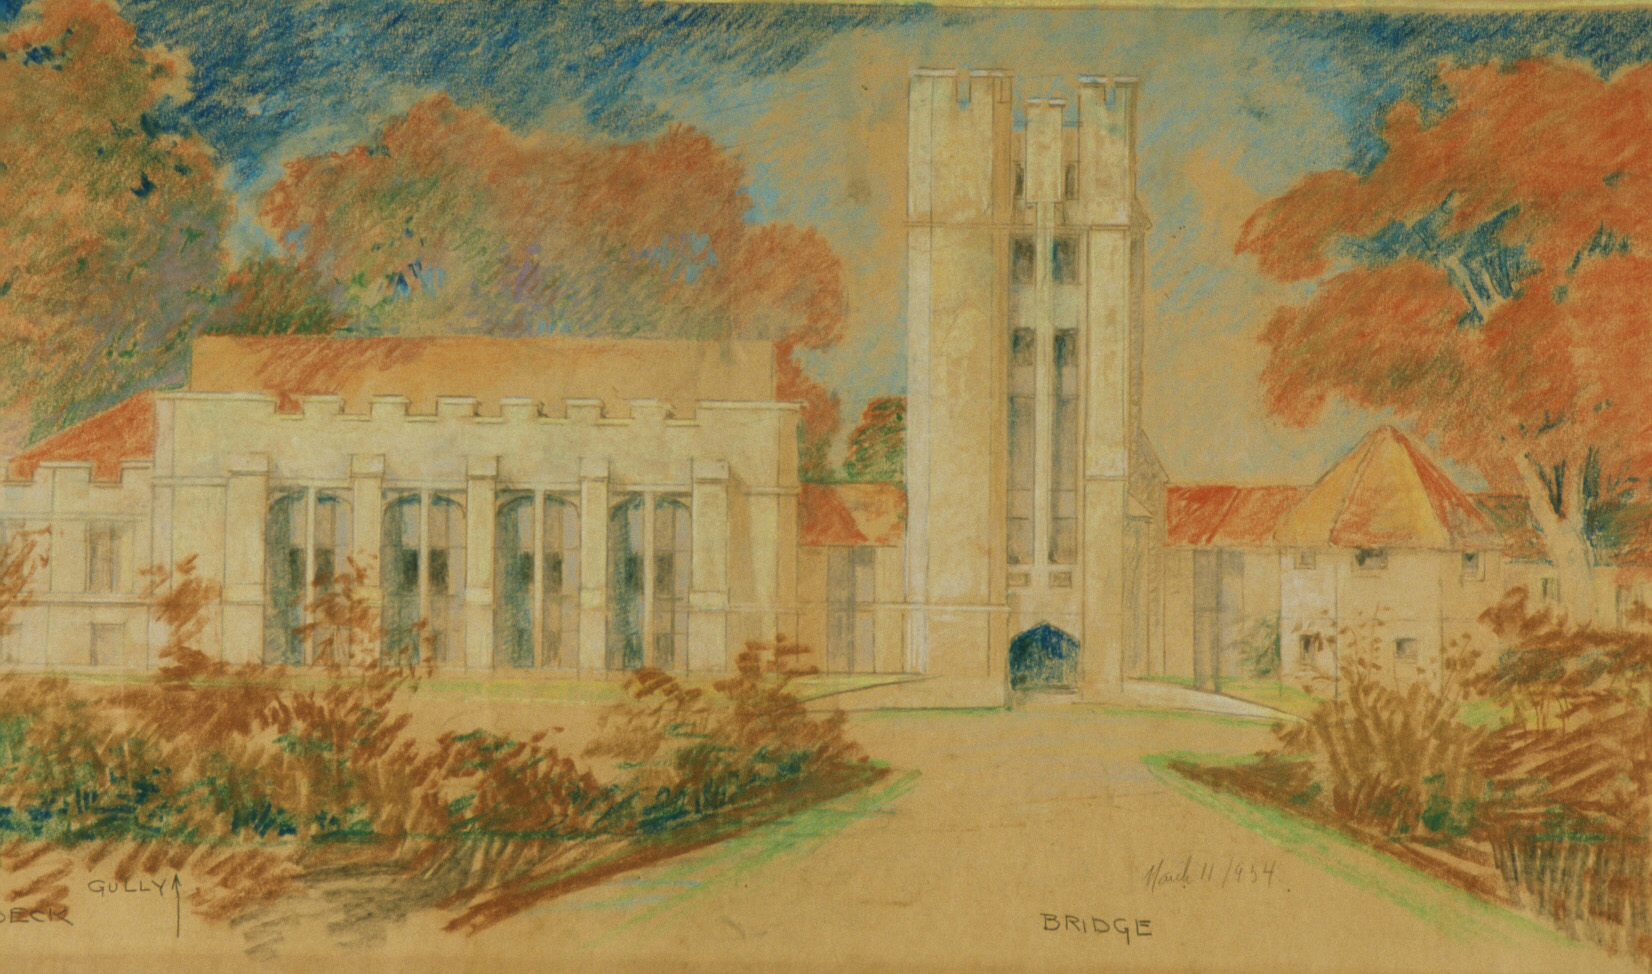 Library and School of Nations: Bridge, 1934, Pastel, graphite on cream paper, 19 x 32 in.